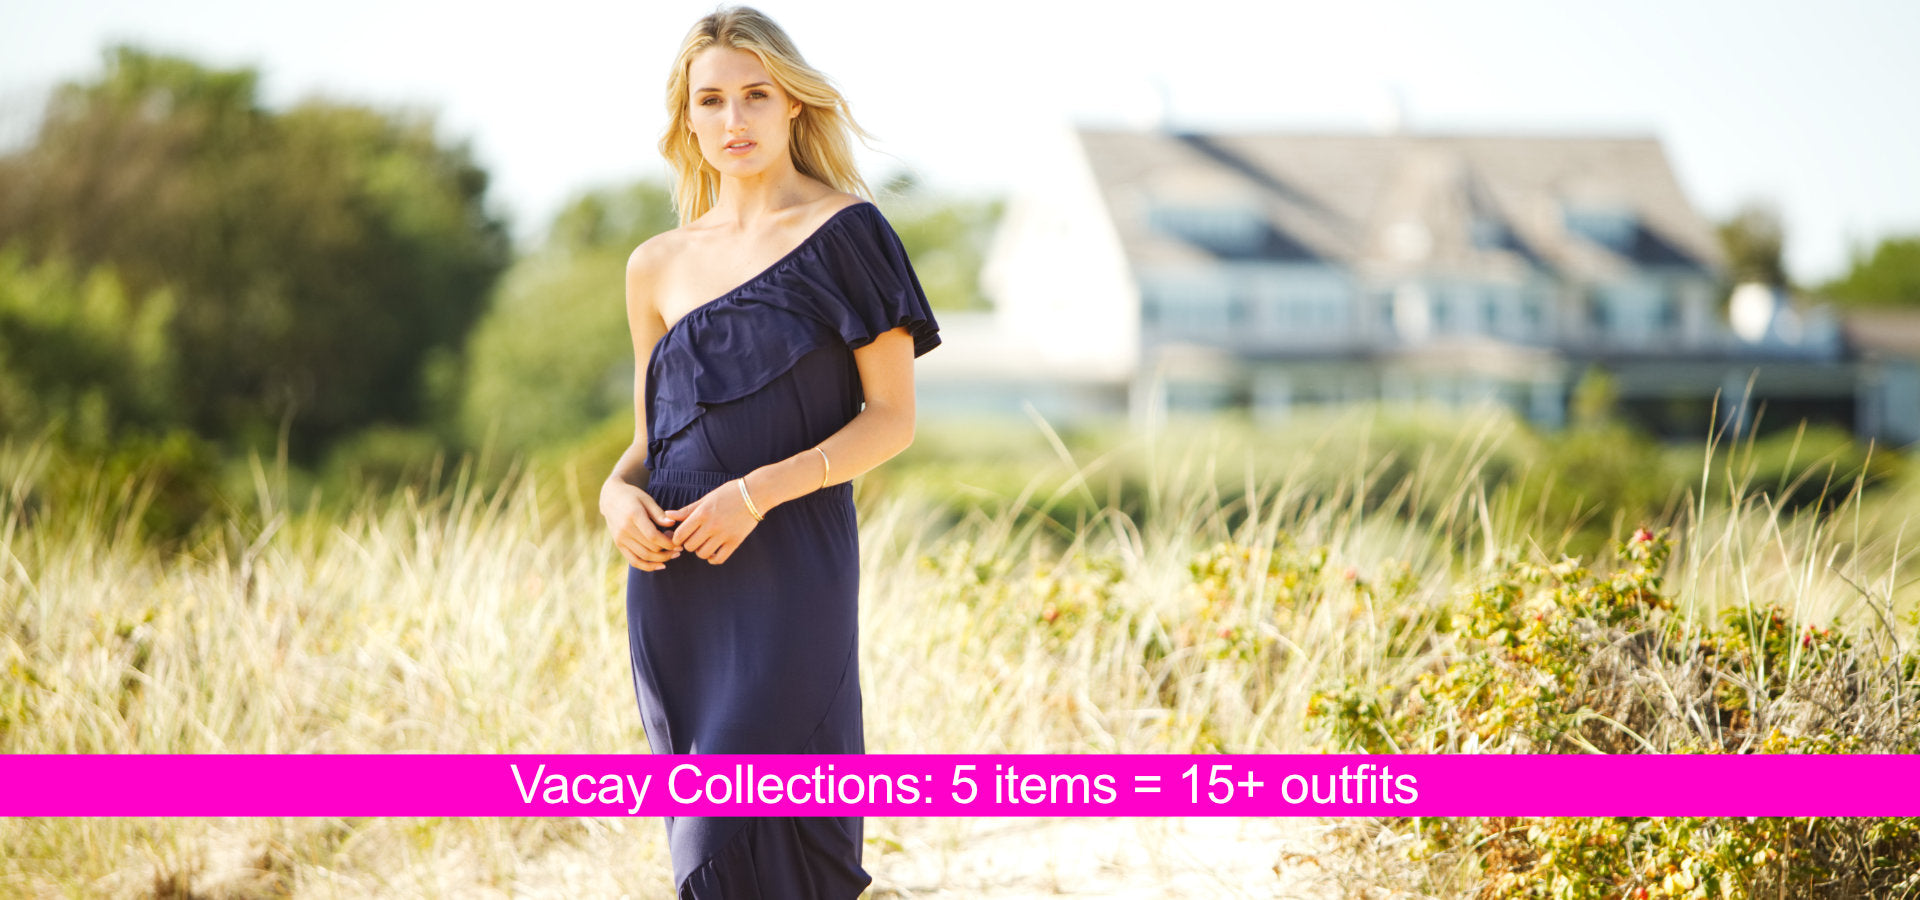 Vacay 5-Piece Collections = 15+ outfits